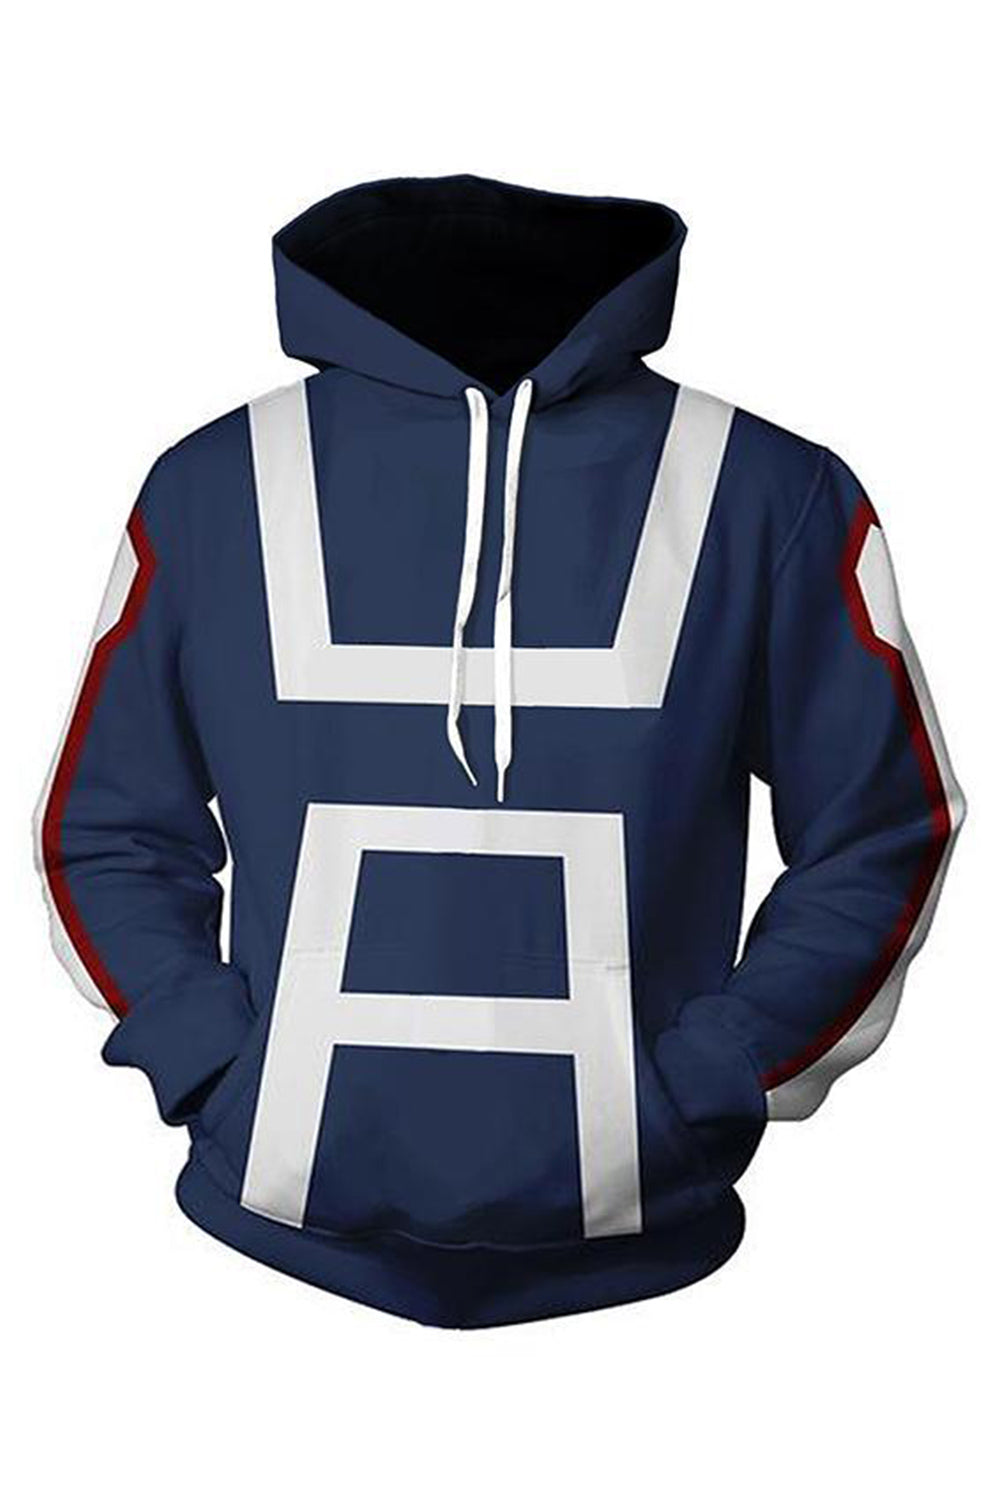 Boku no Hero Academia Hoodie Cosplay Costume